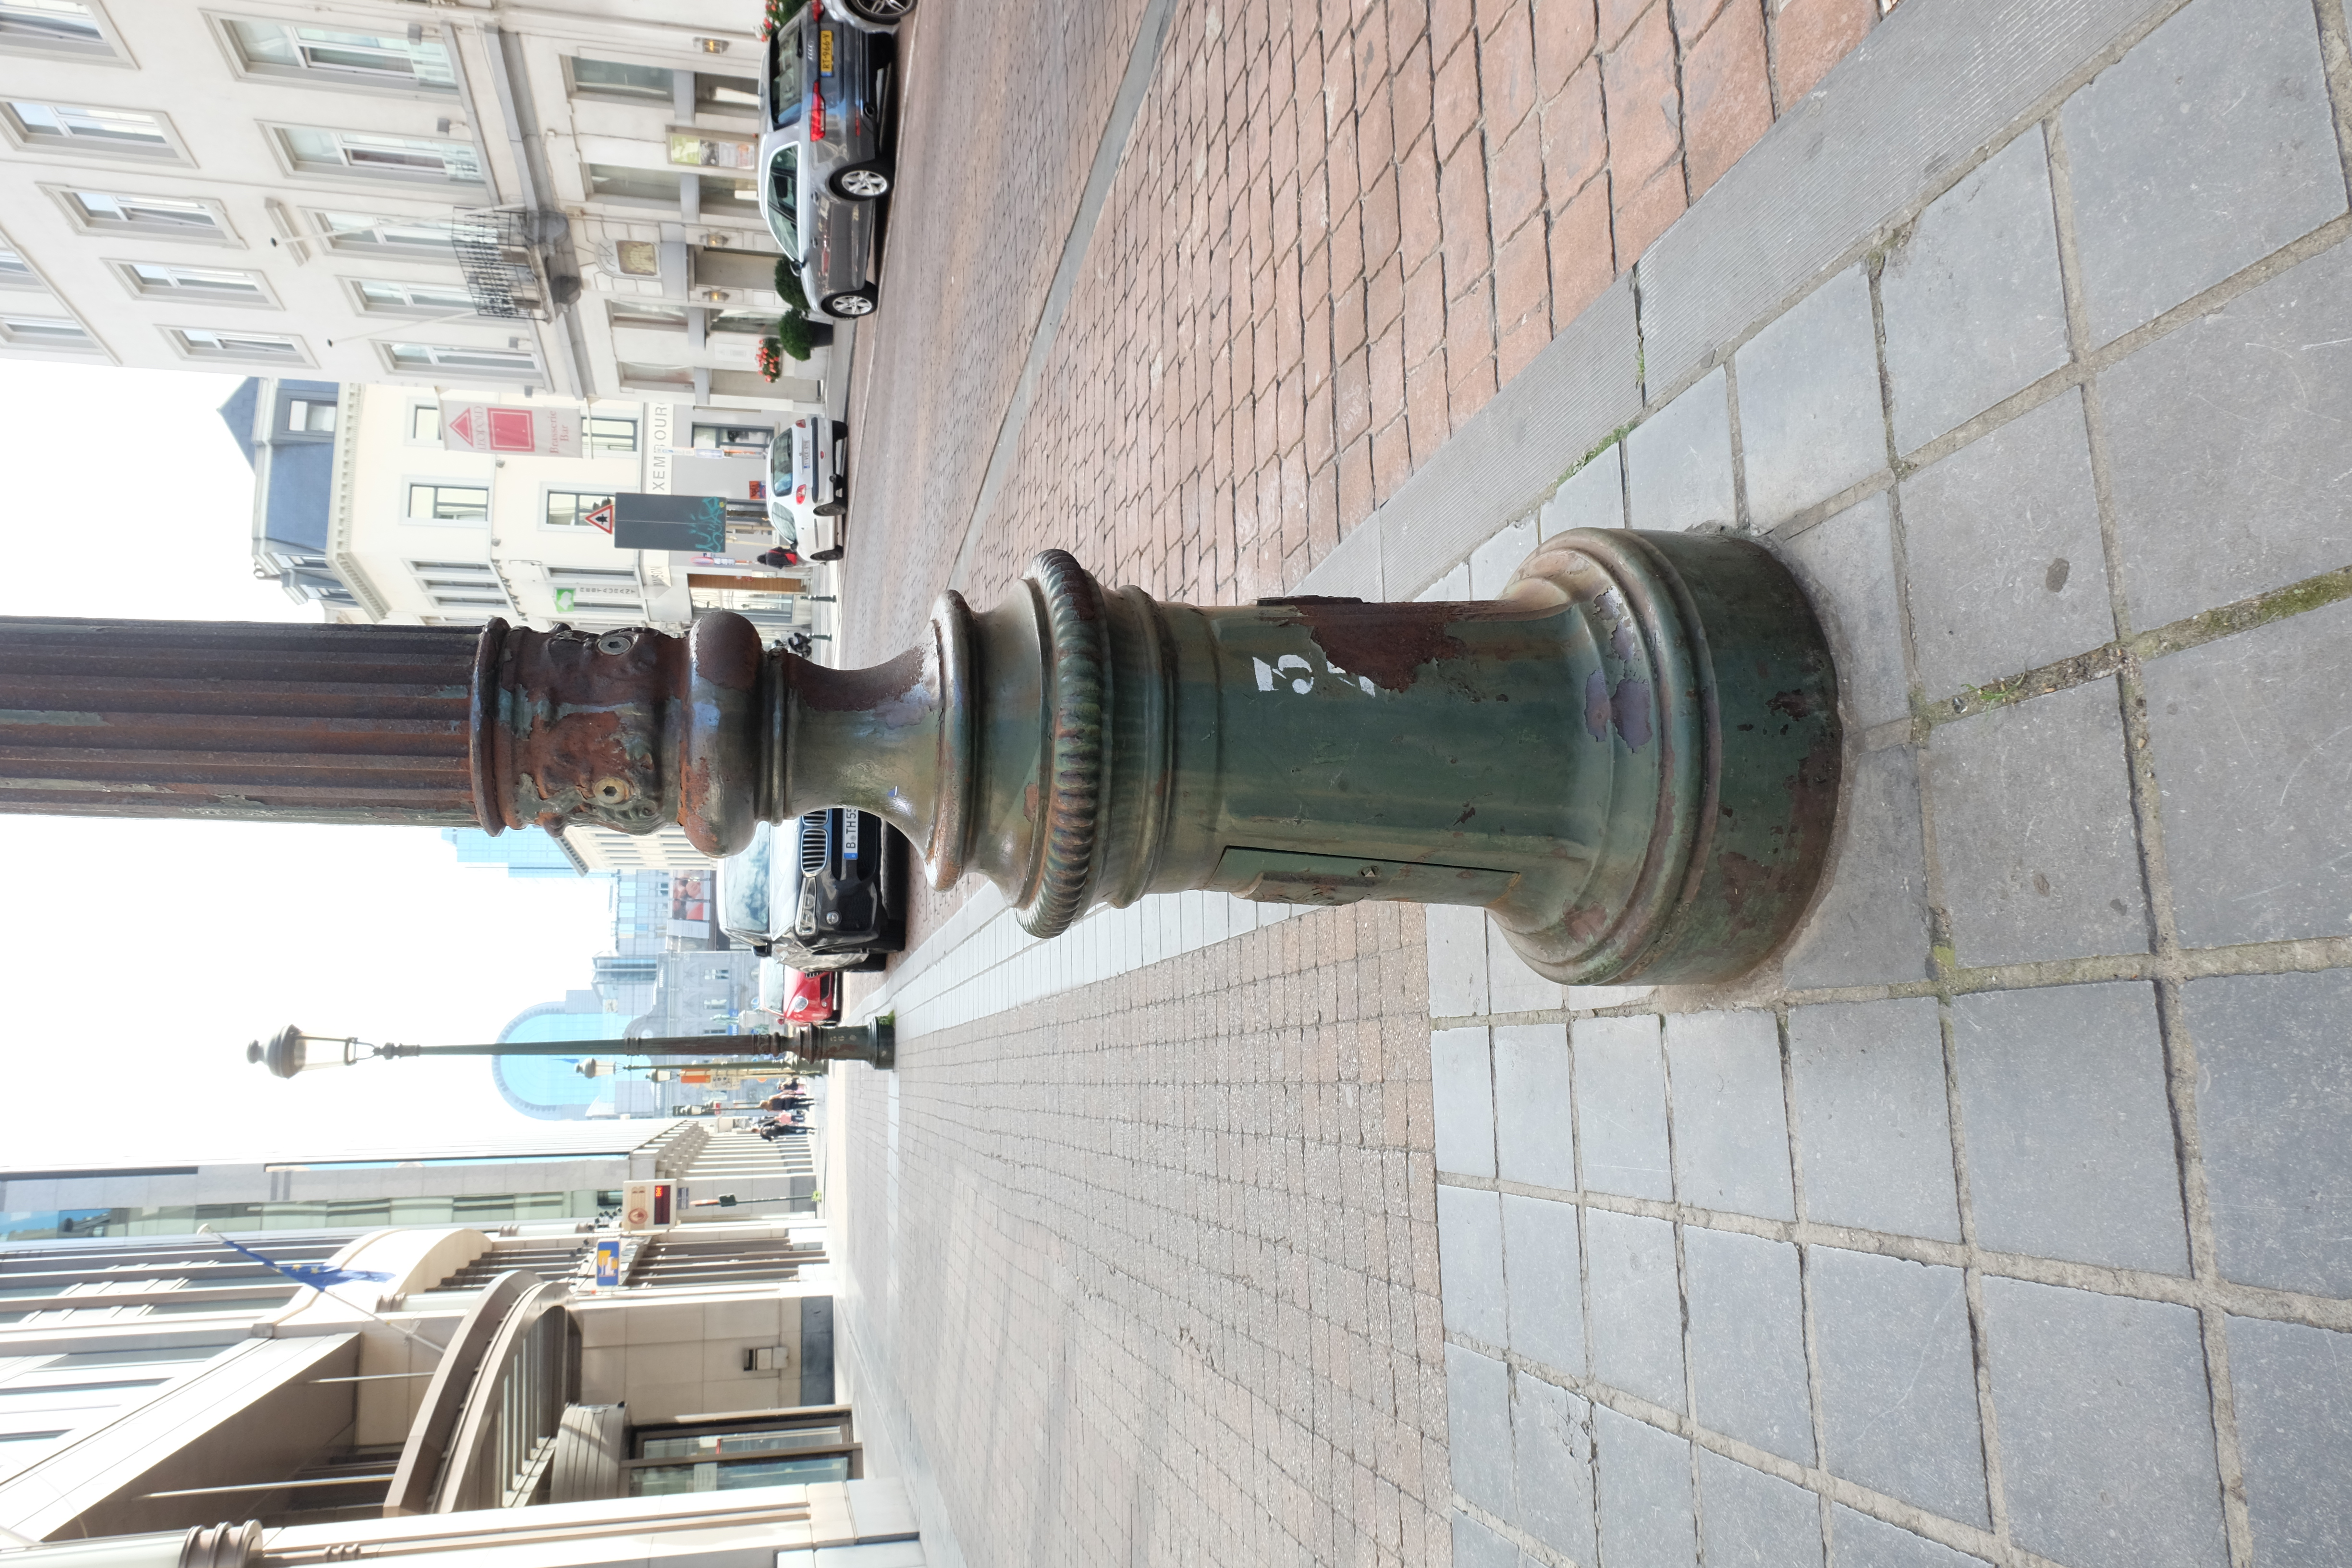 Street lamp post preview image 2